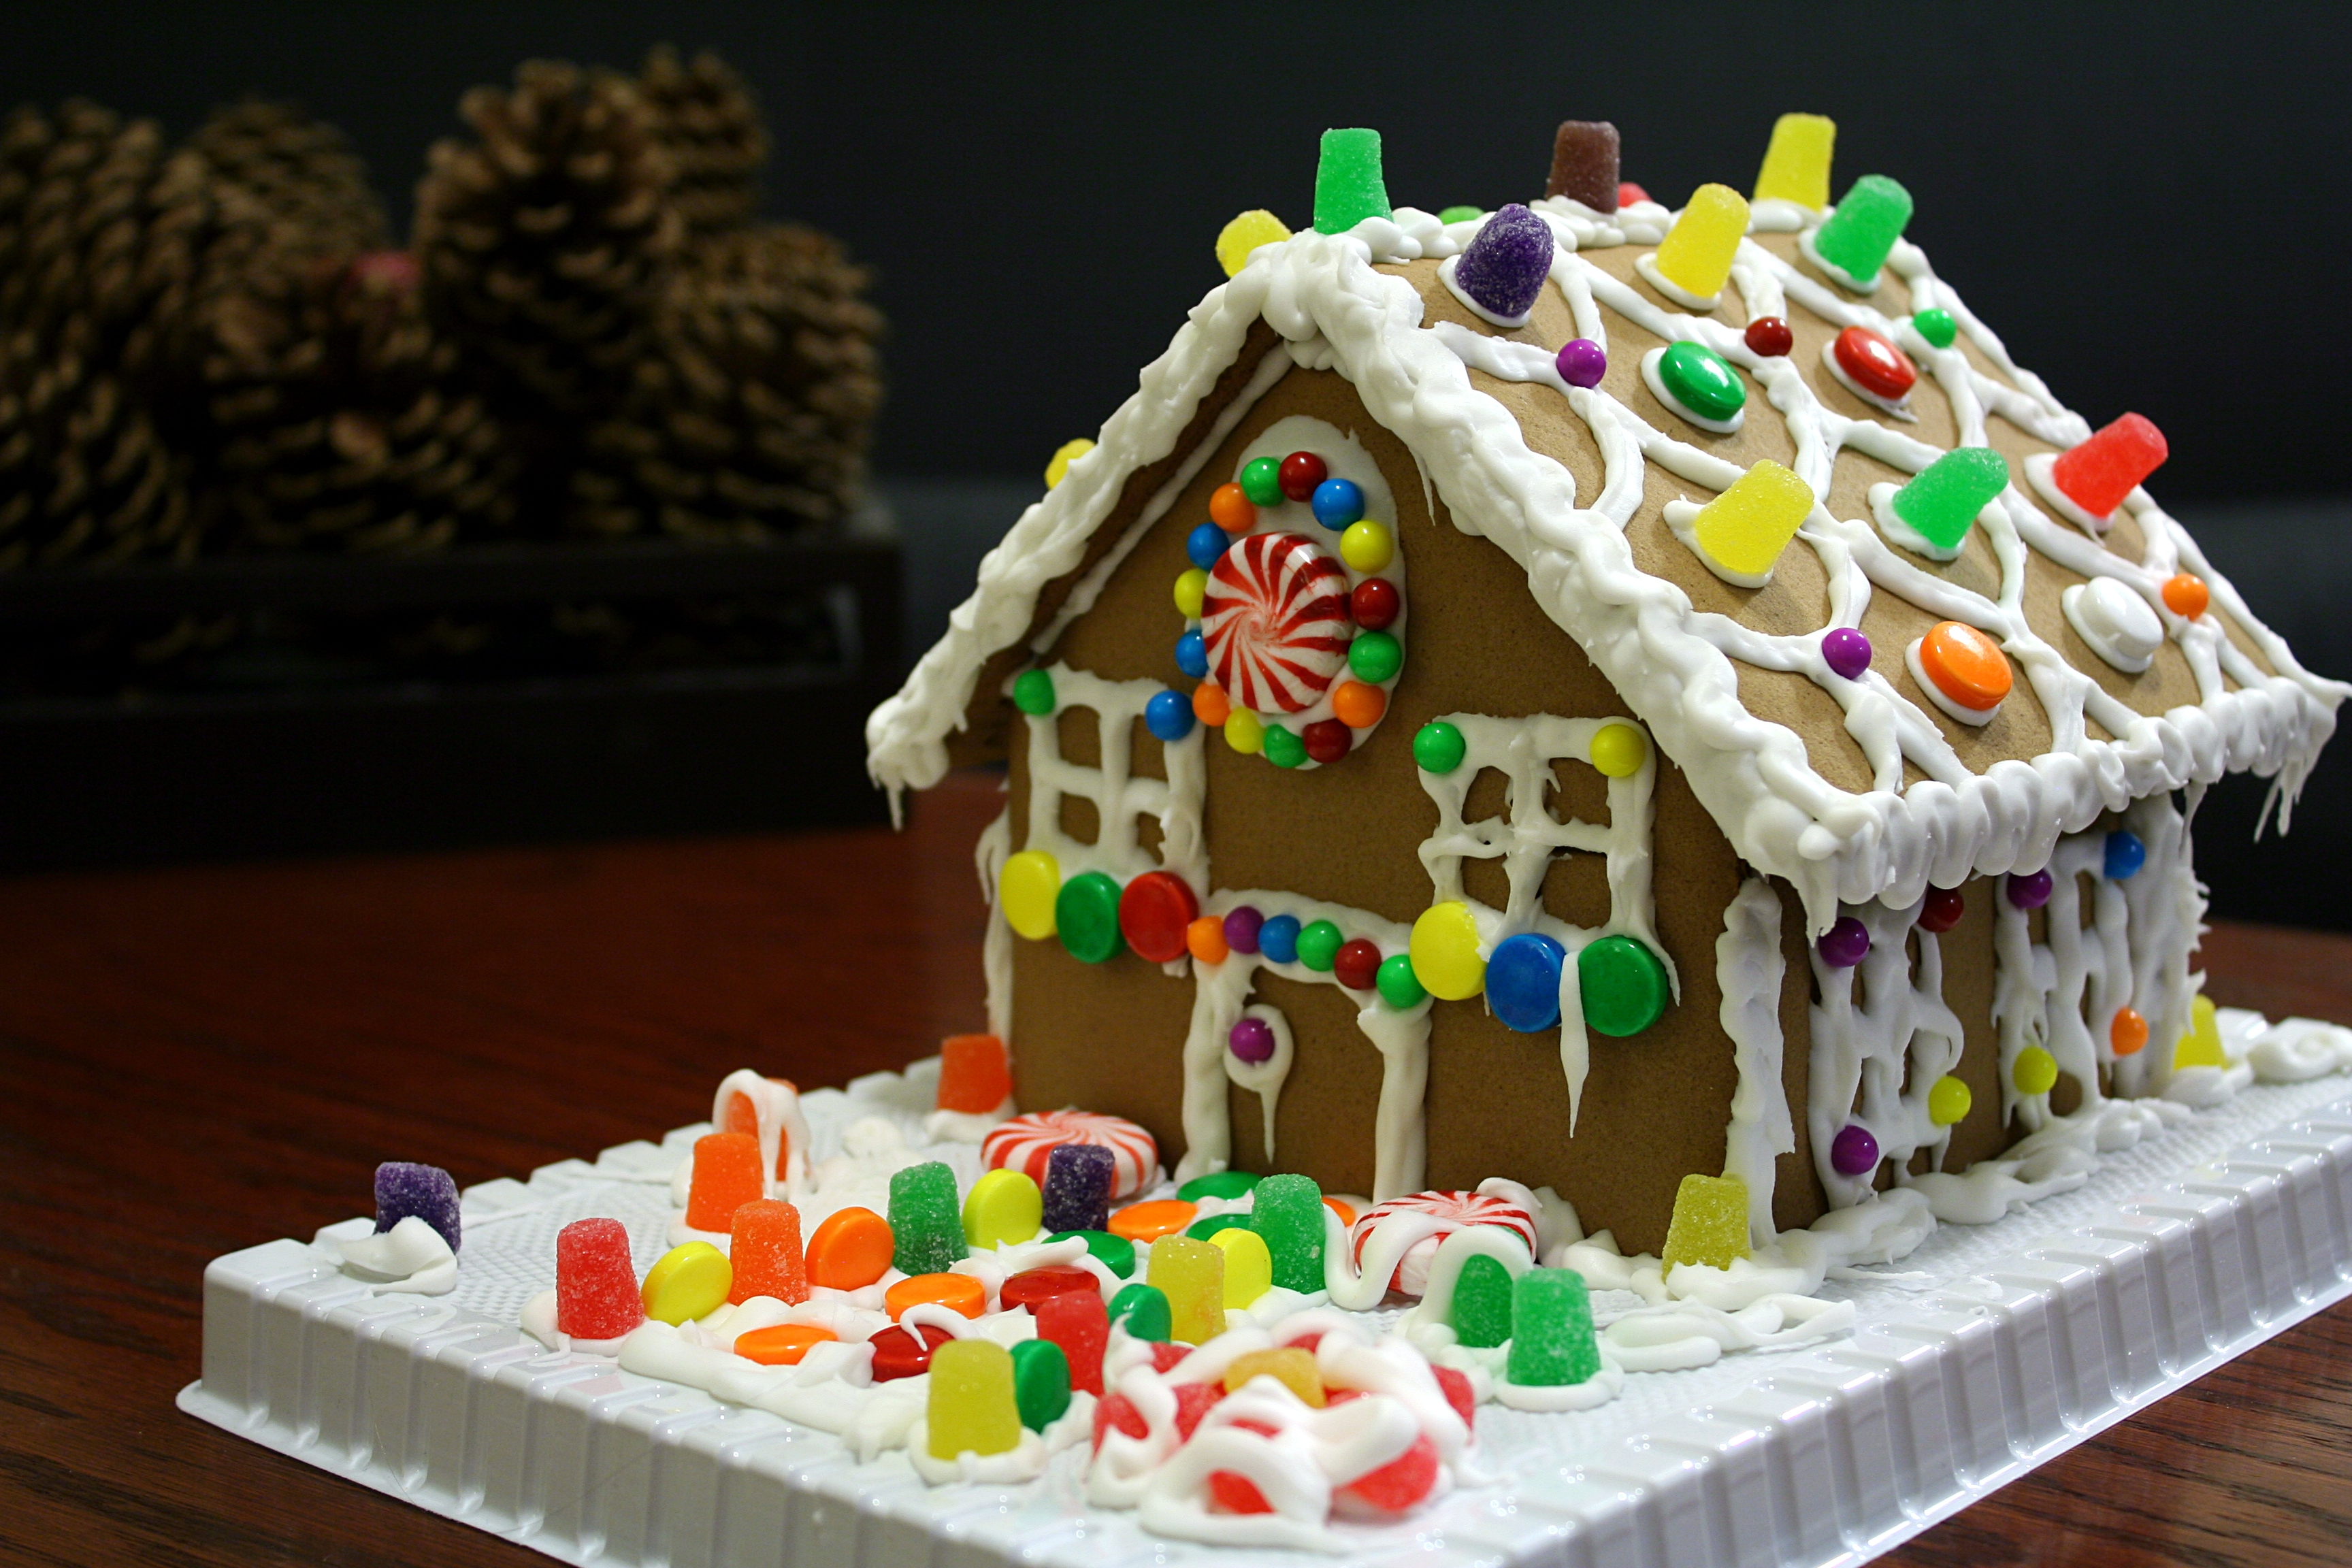 File:Gingerbread house with gumdrops.jpg - Wikimedia Commons